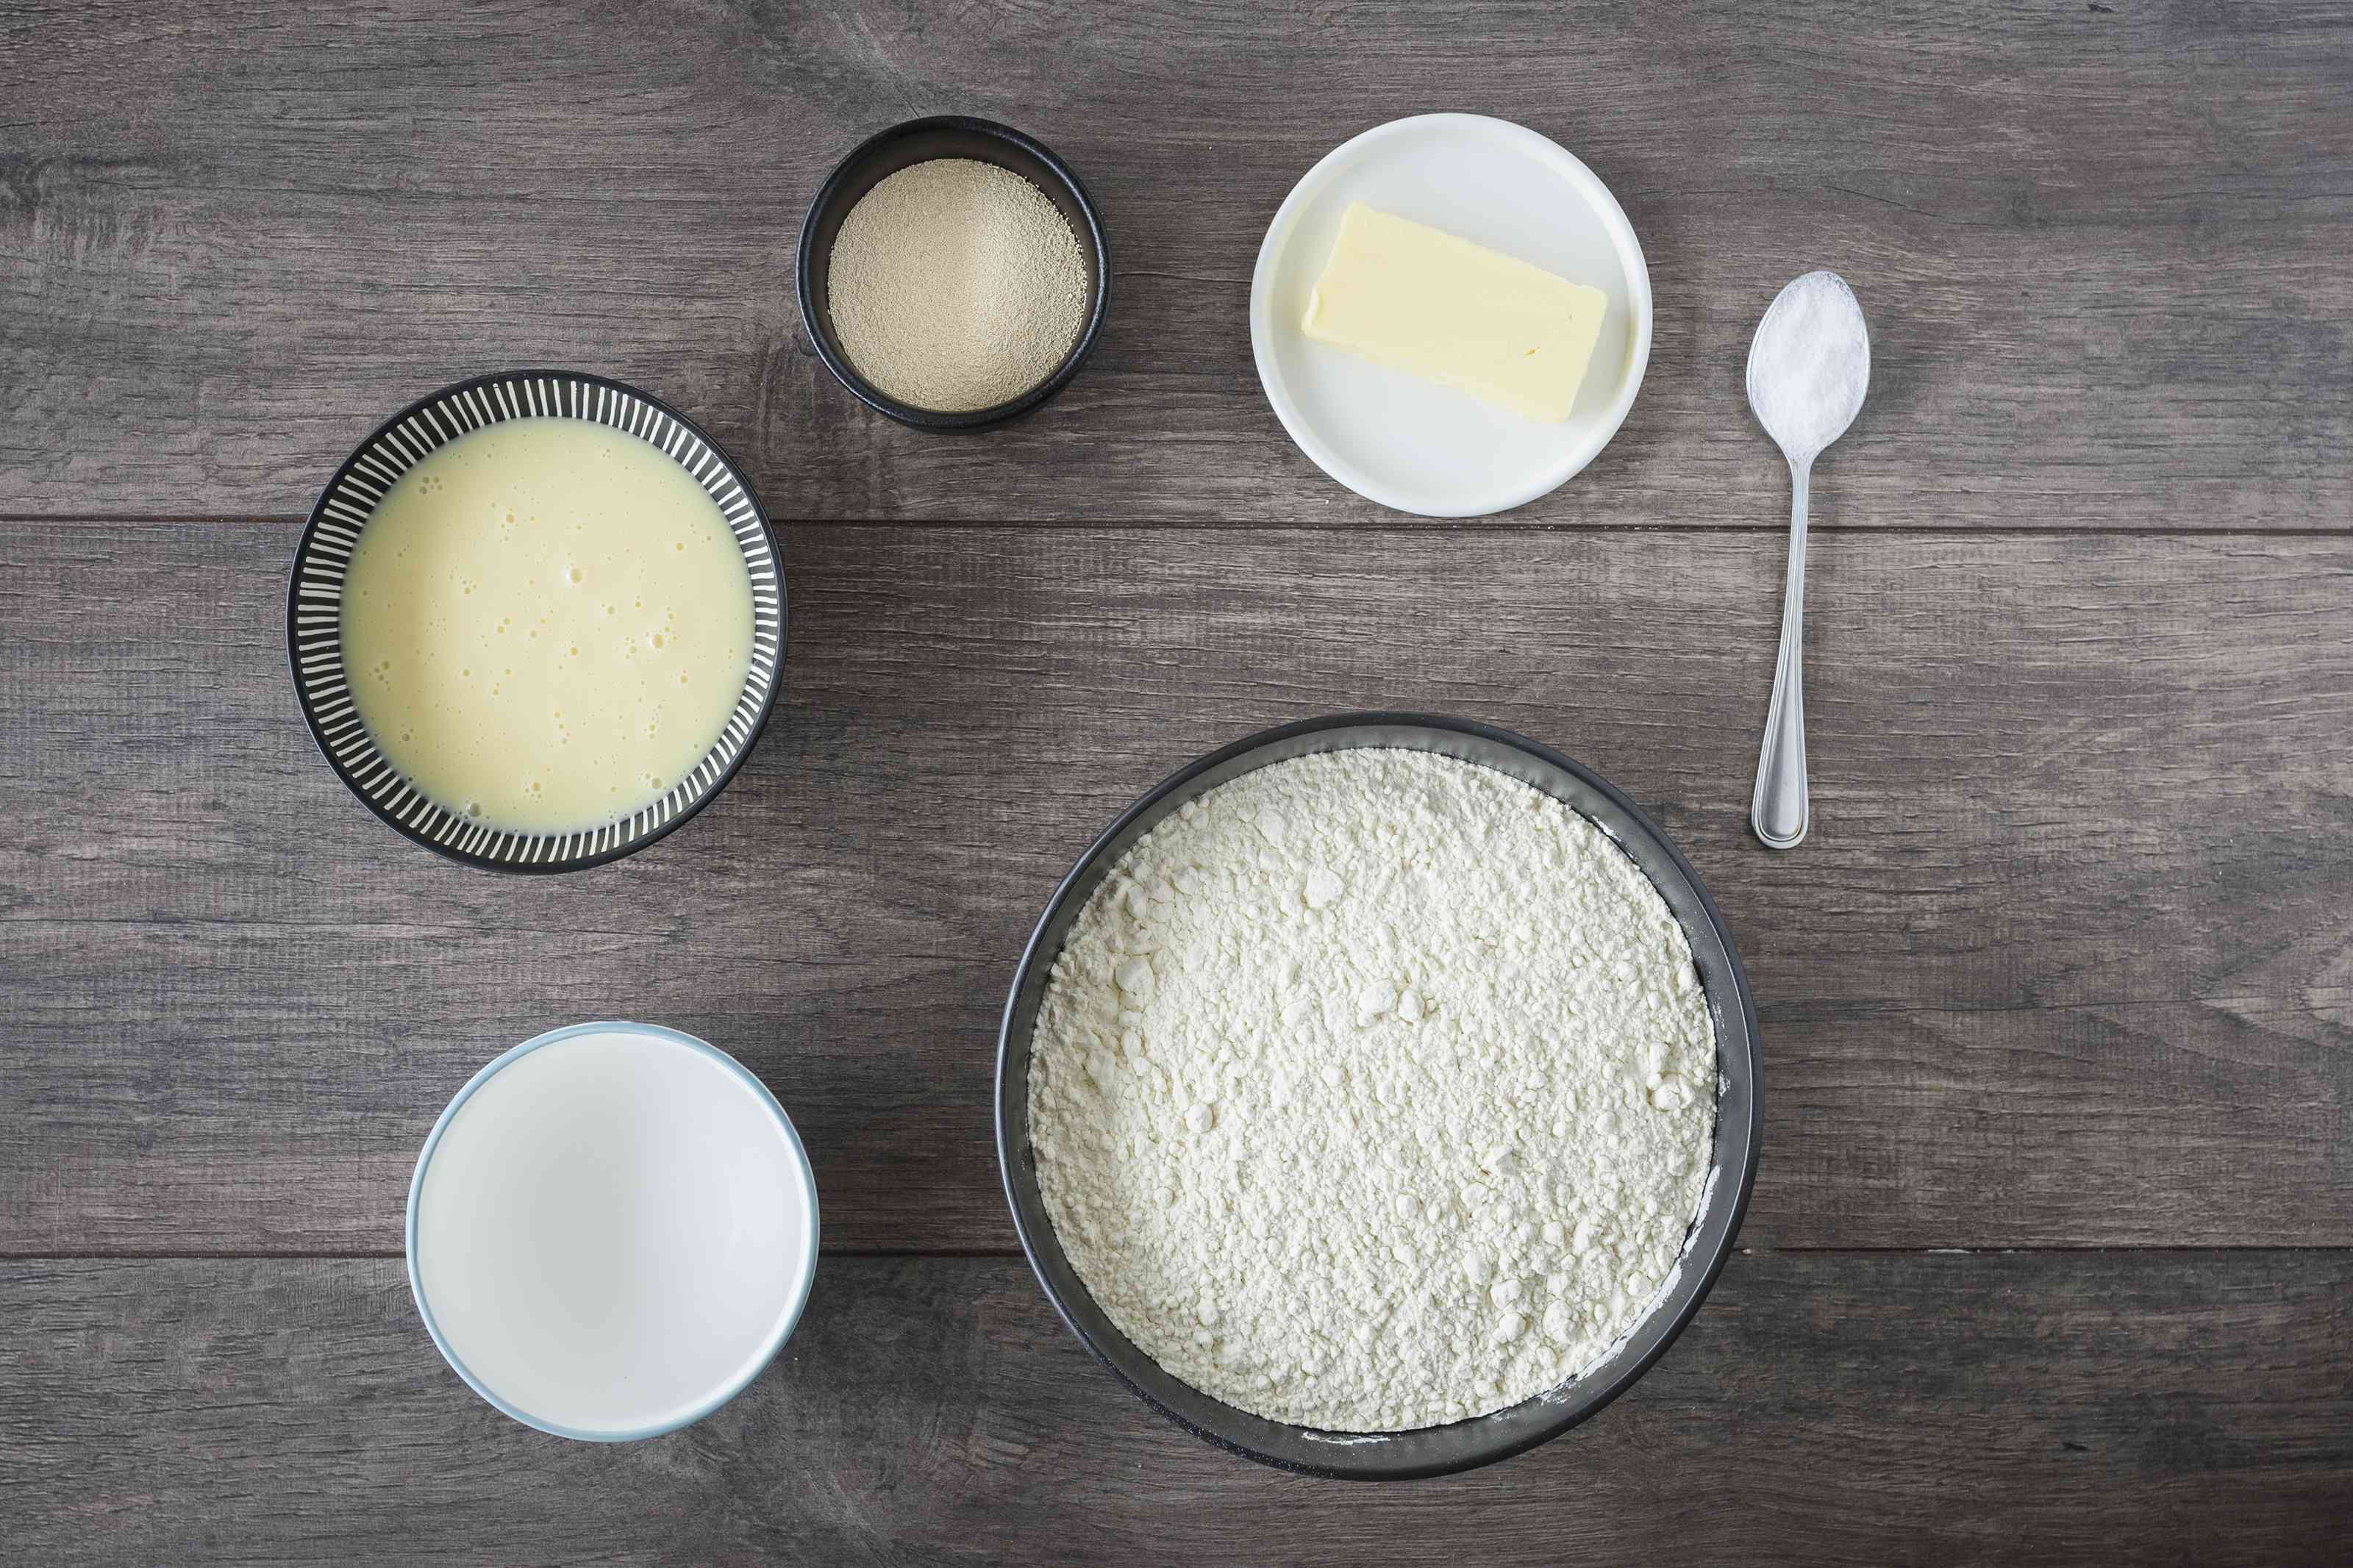 Ingredients for white bread made with cornbread